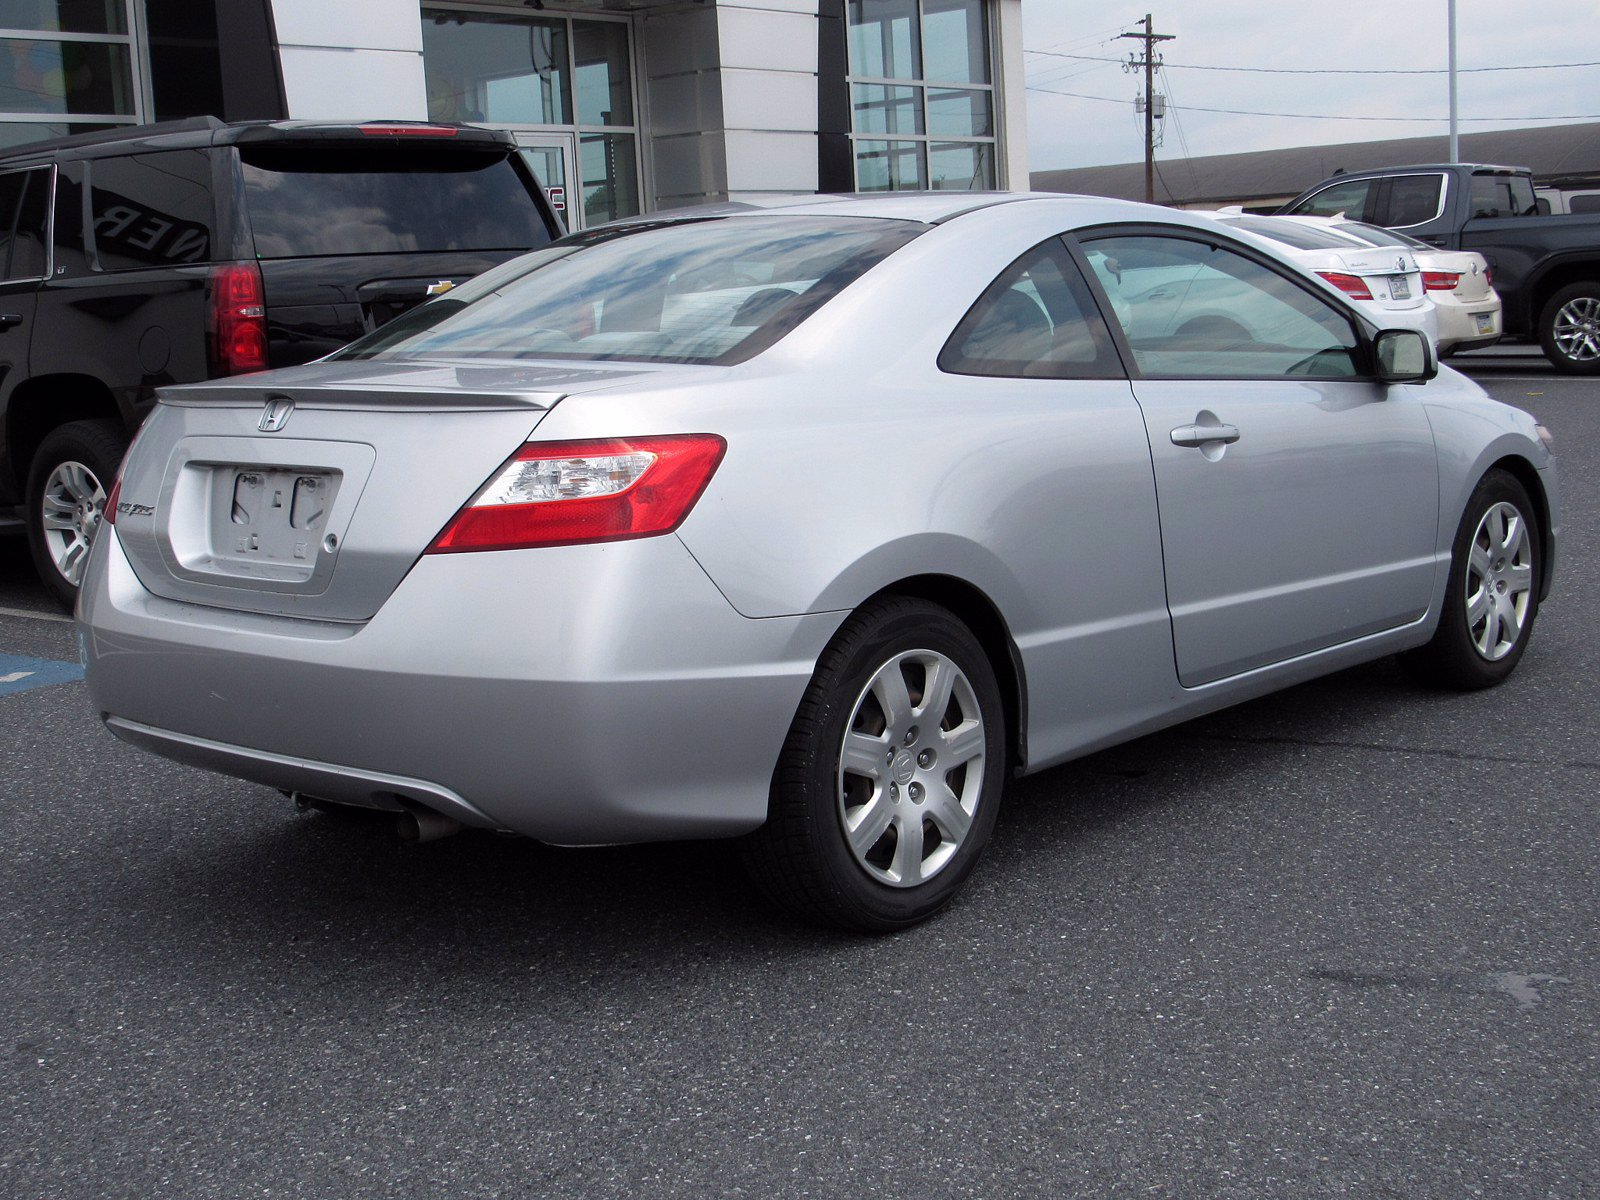 Pre-Owned 2008 Honda Civic Cpe LX